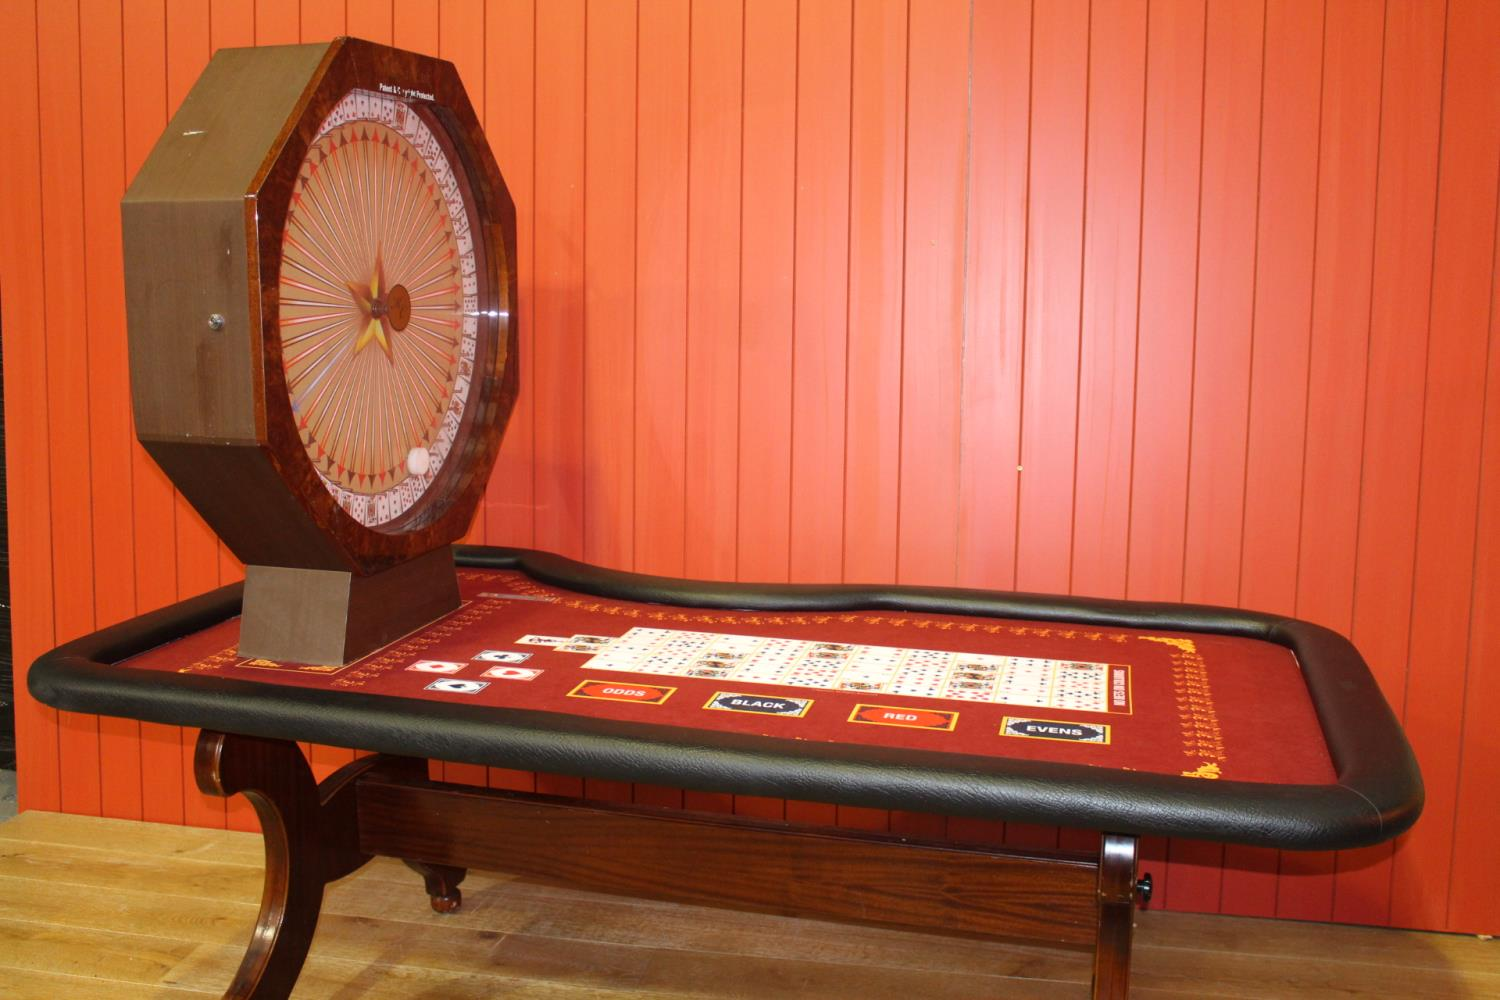 Roulette card table - Image 3 of 4